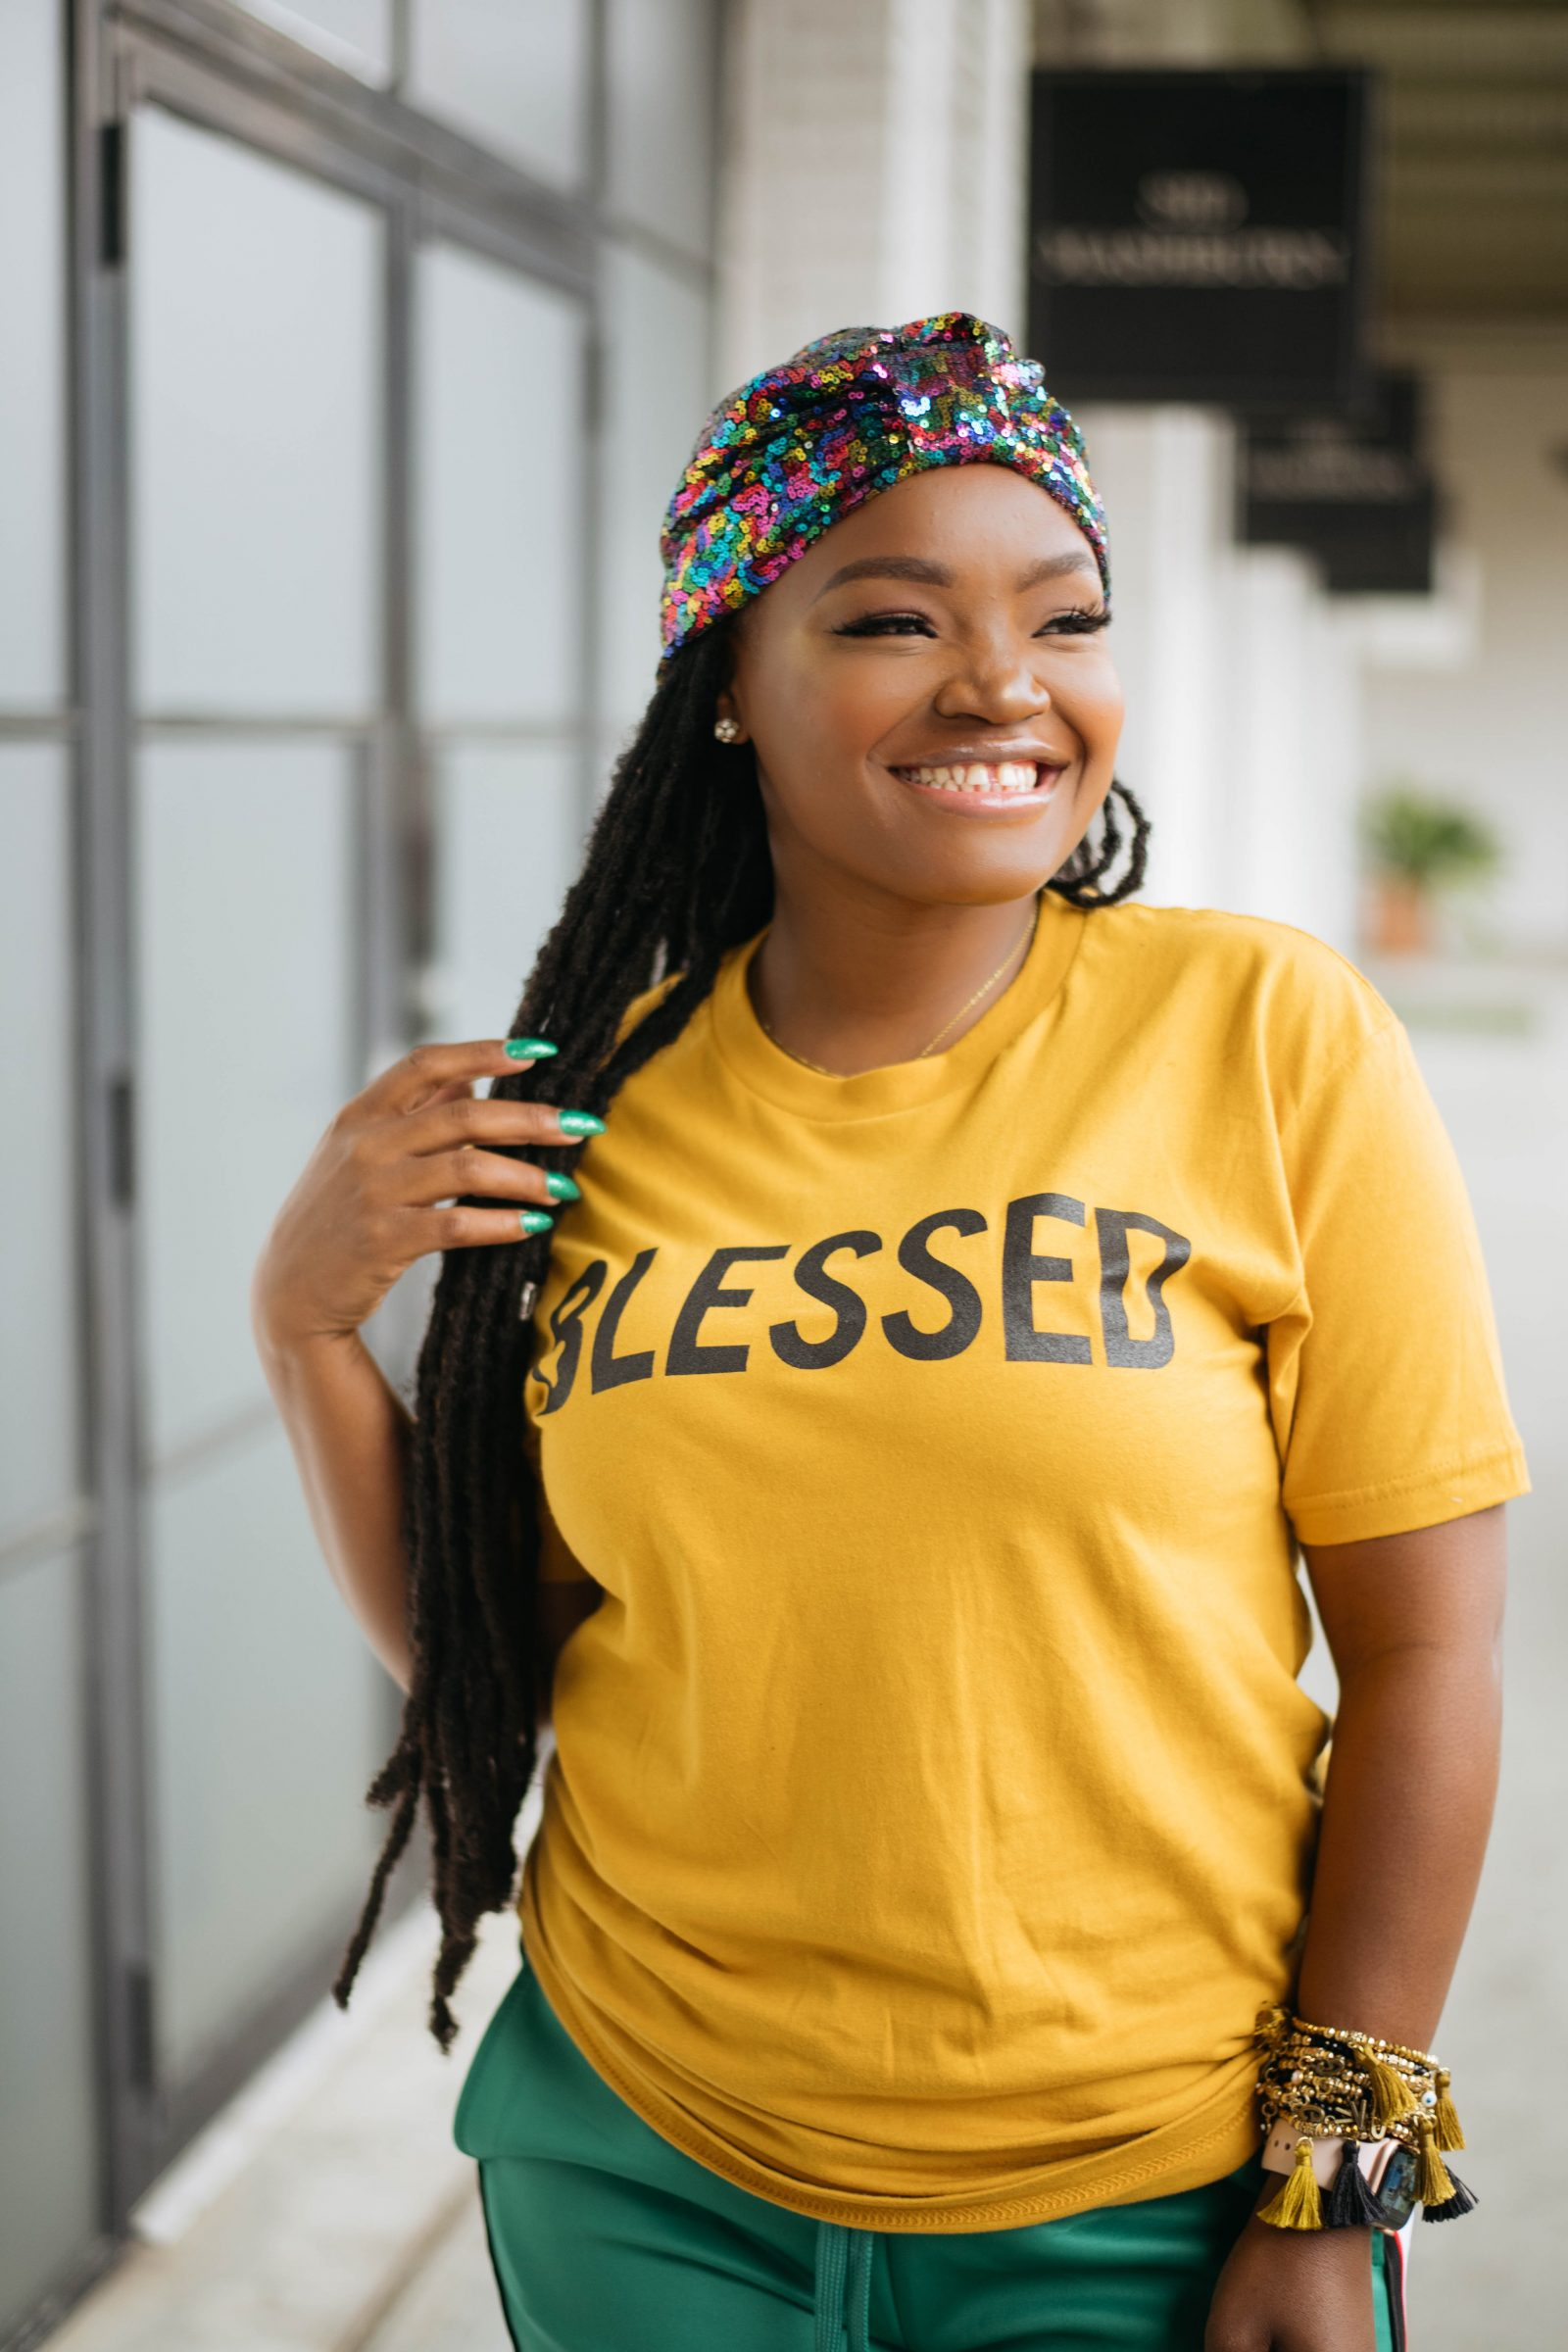 BECAUSE I AM BLESSED TSHIRT